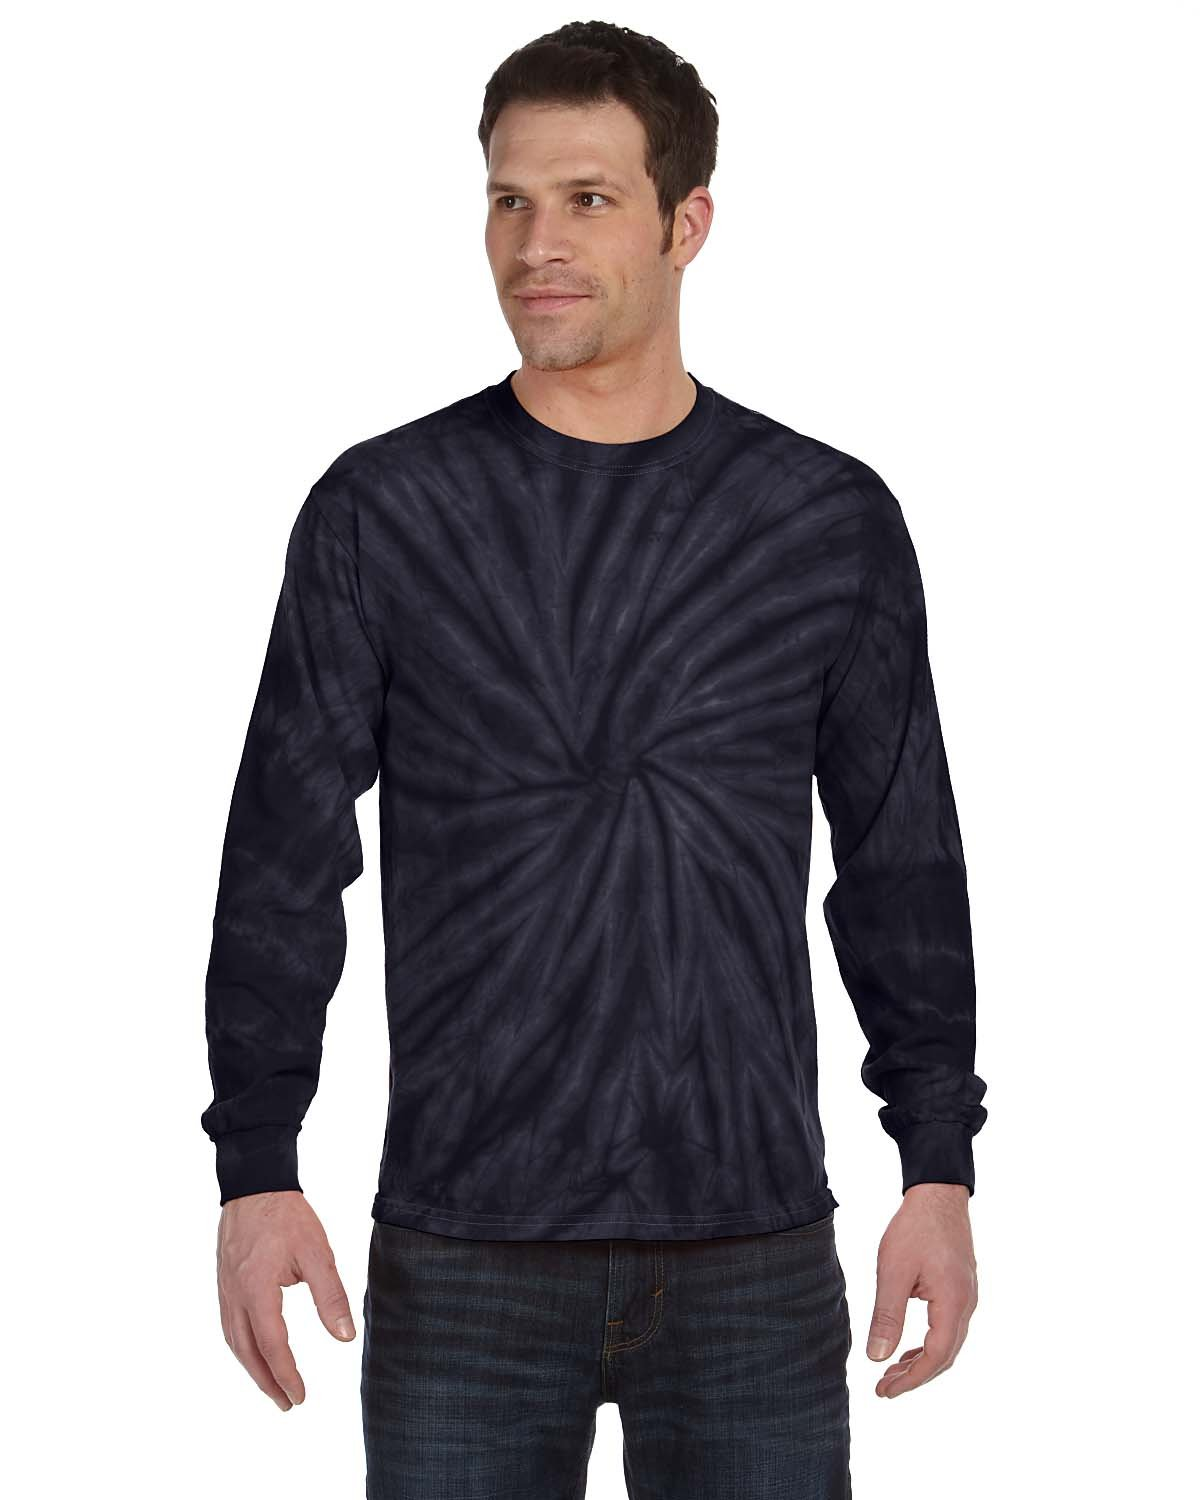 Tie-Dye Adult 5.4 oz. 100% Cotton Long-Sleeve T-Shirt SPIDER NAVY